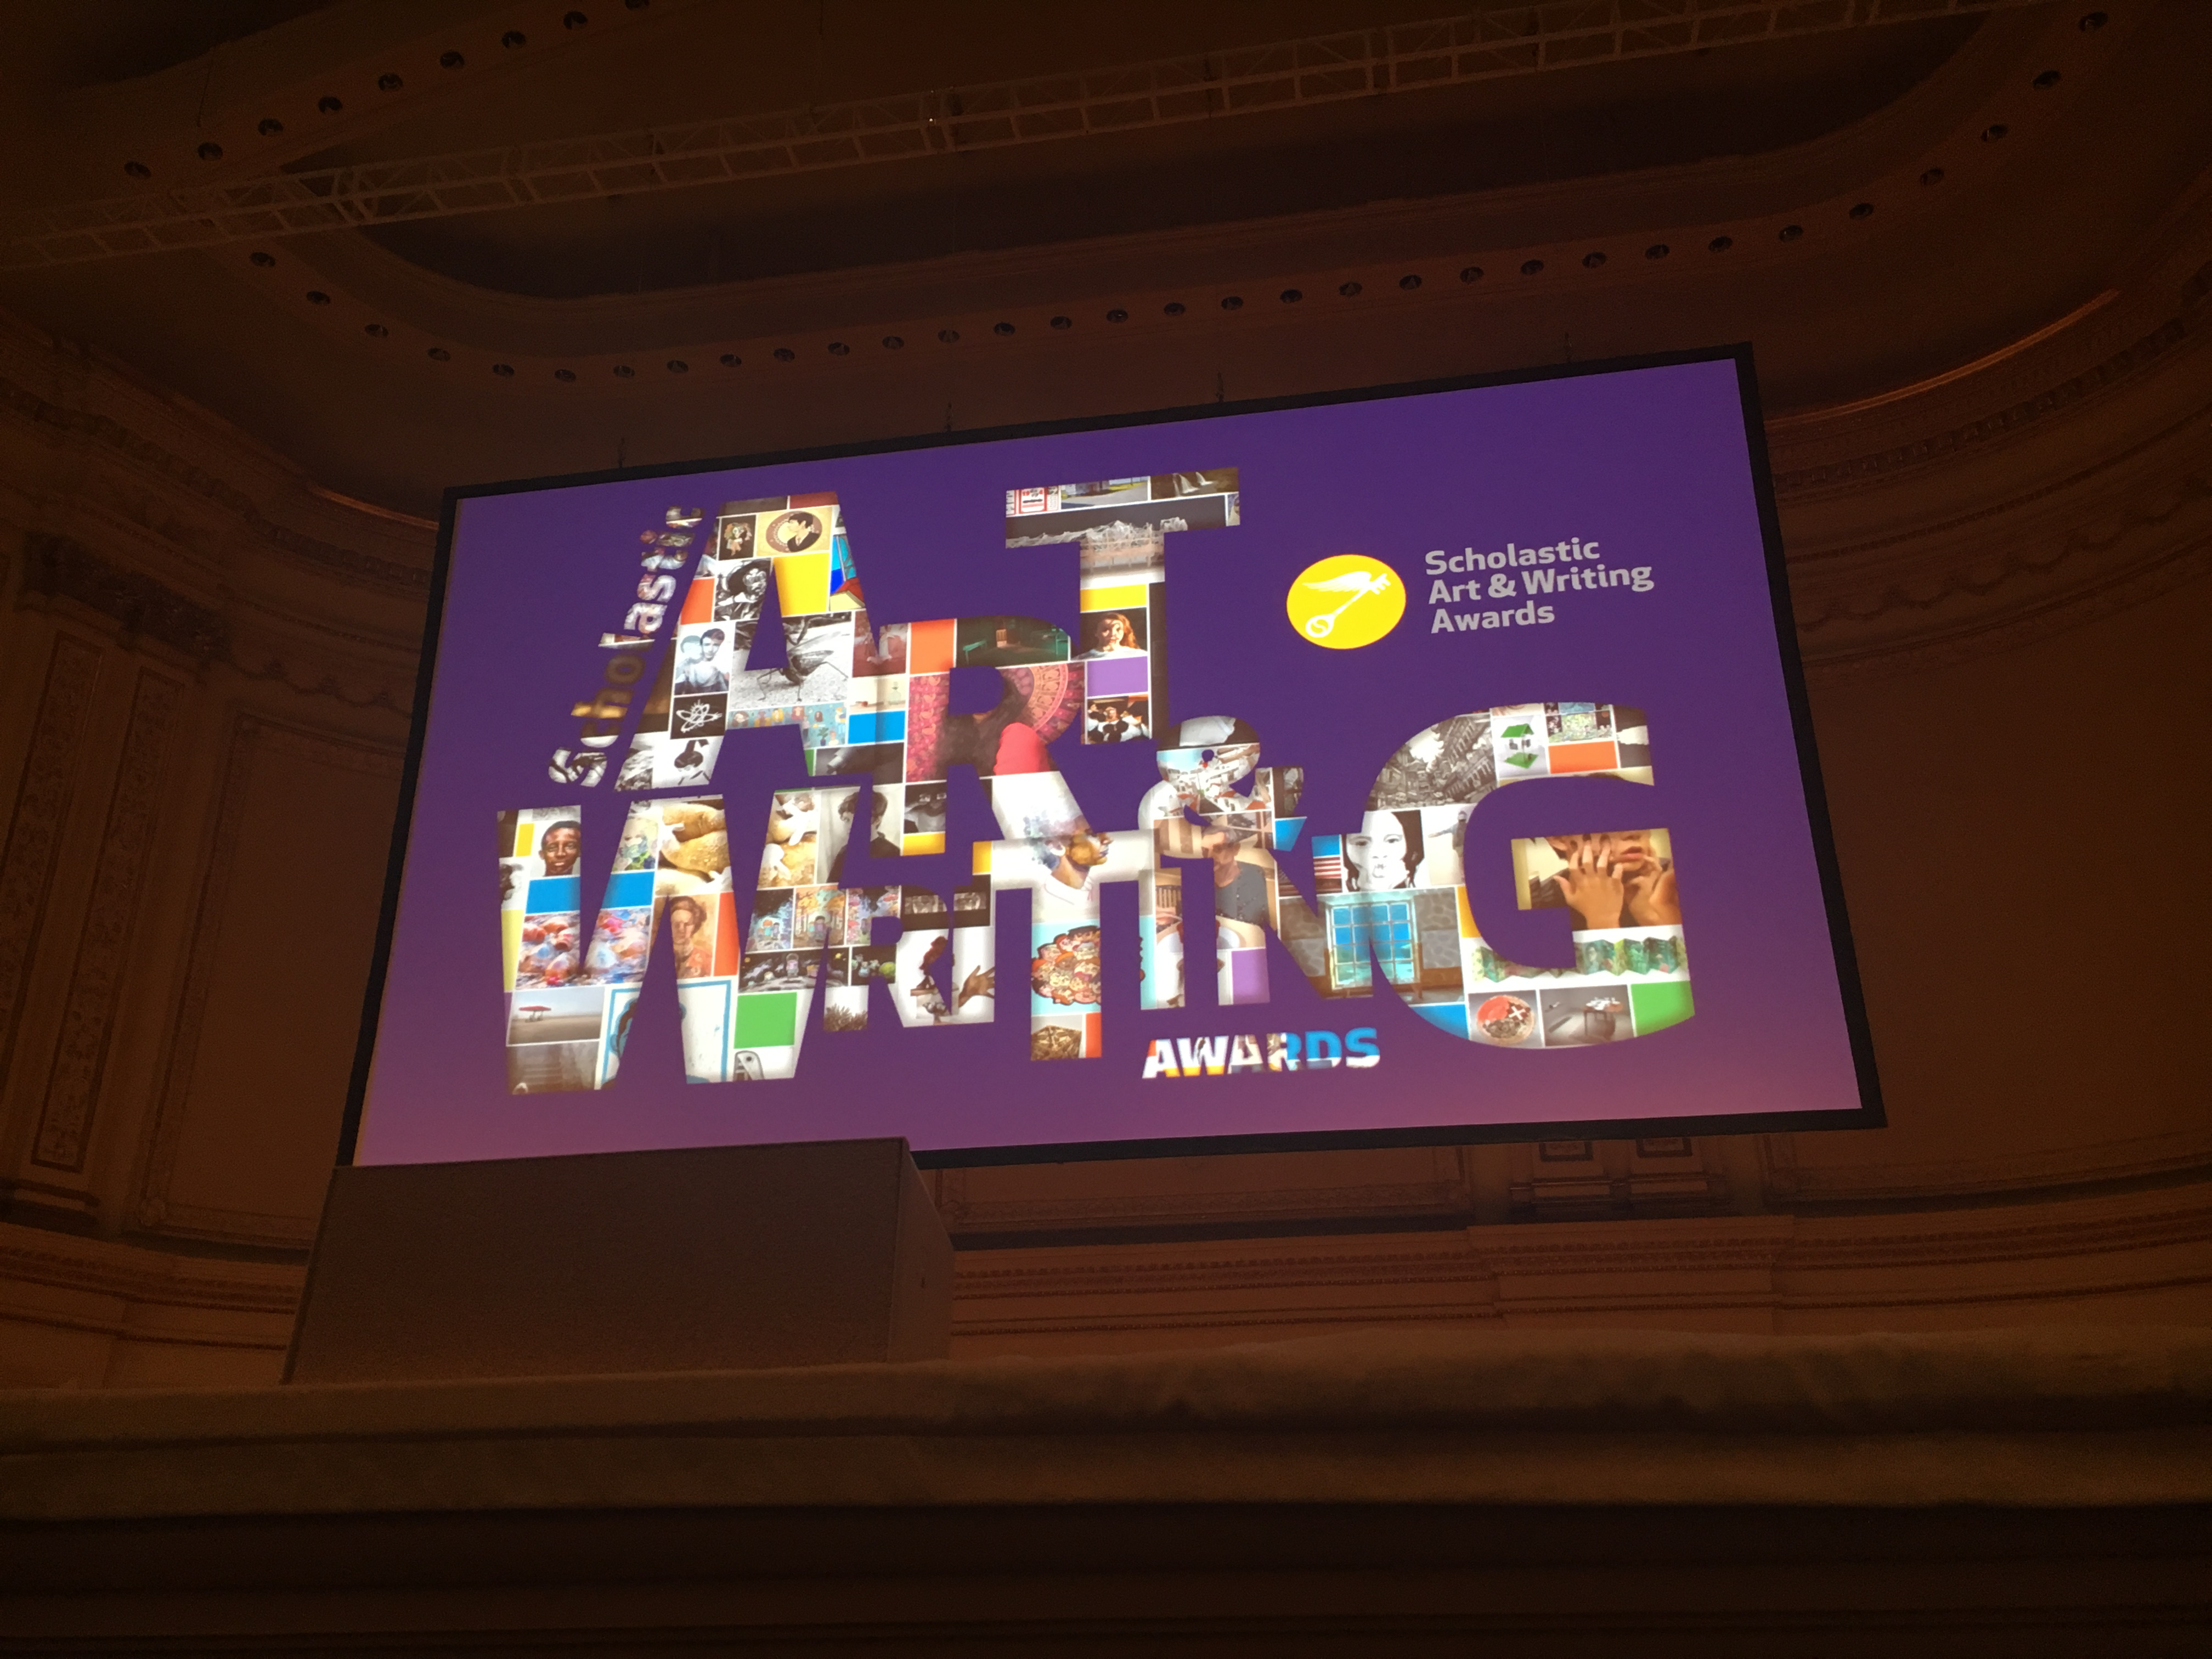 Scholastic Awards at Carnegie Hall